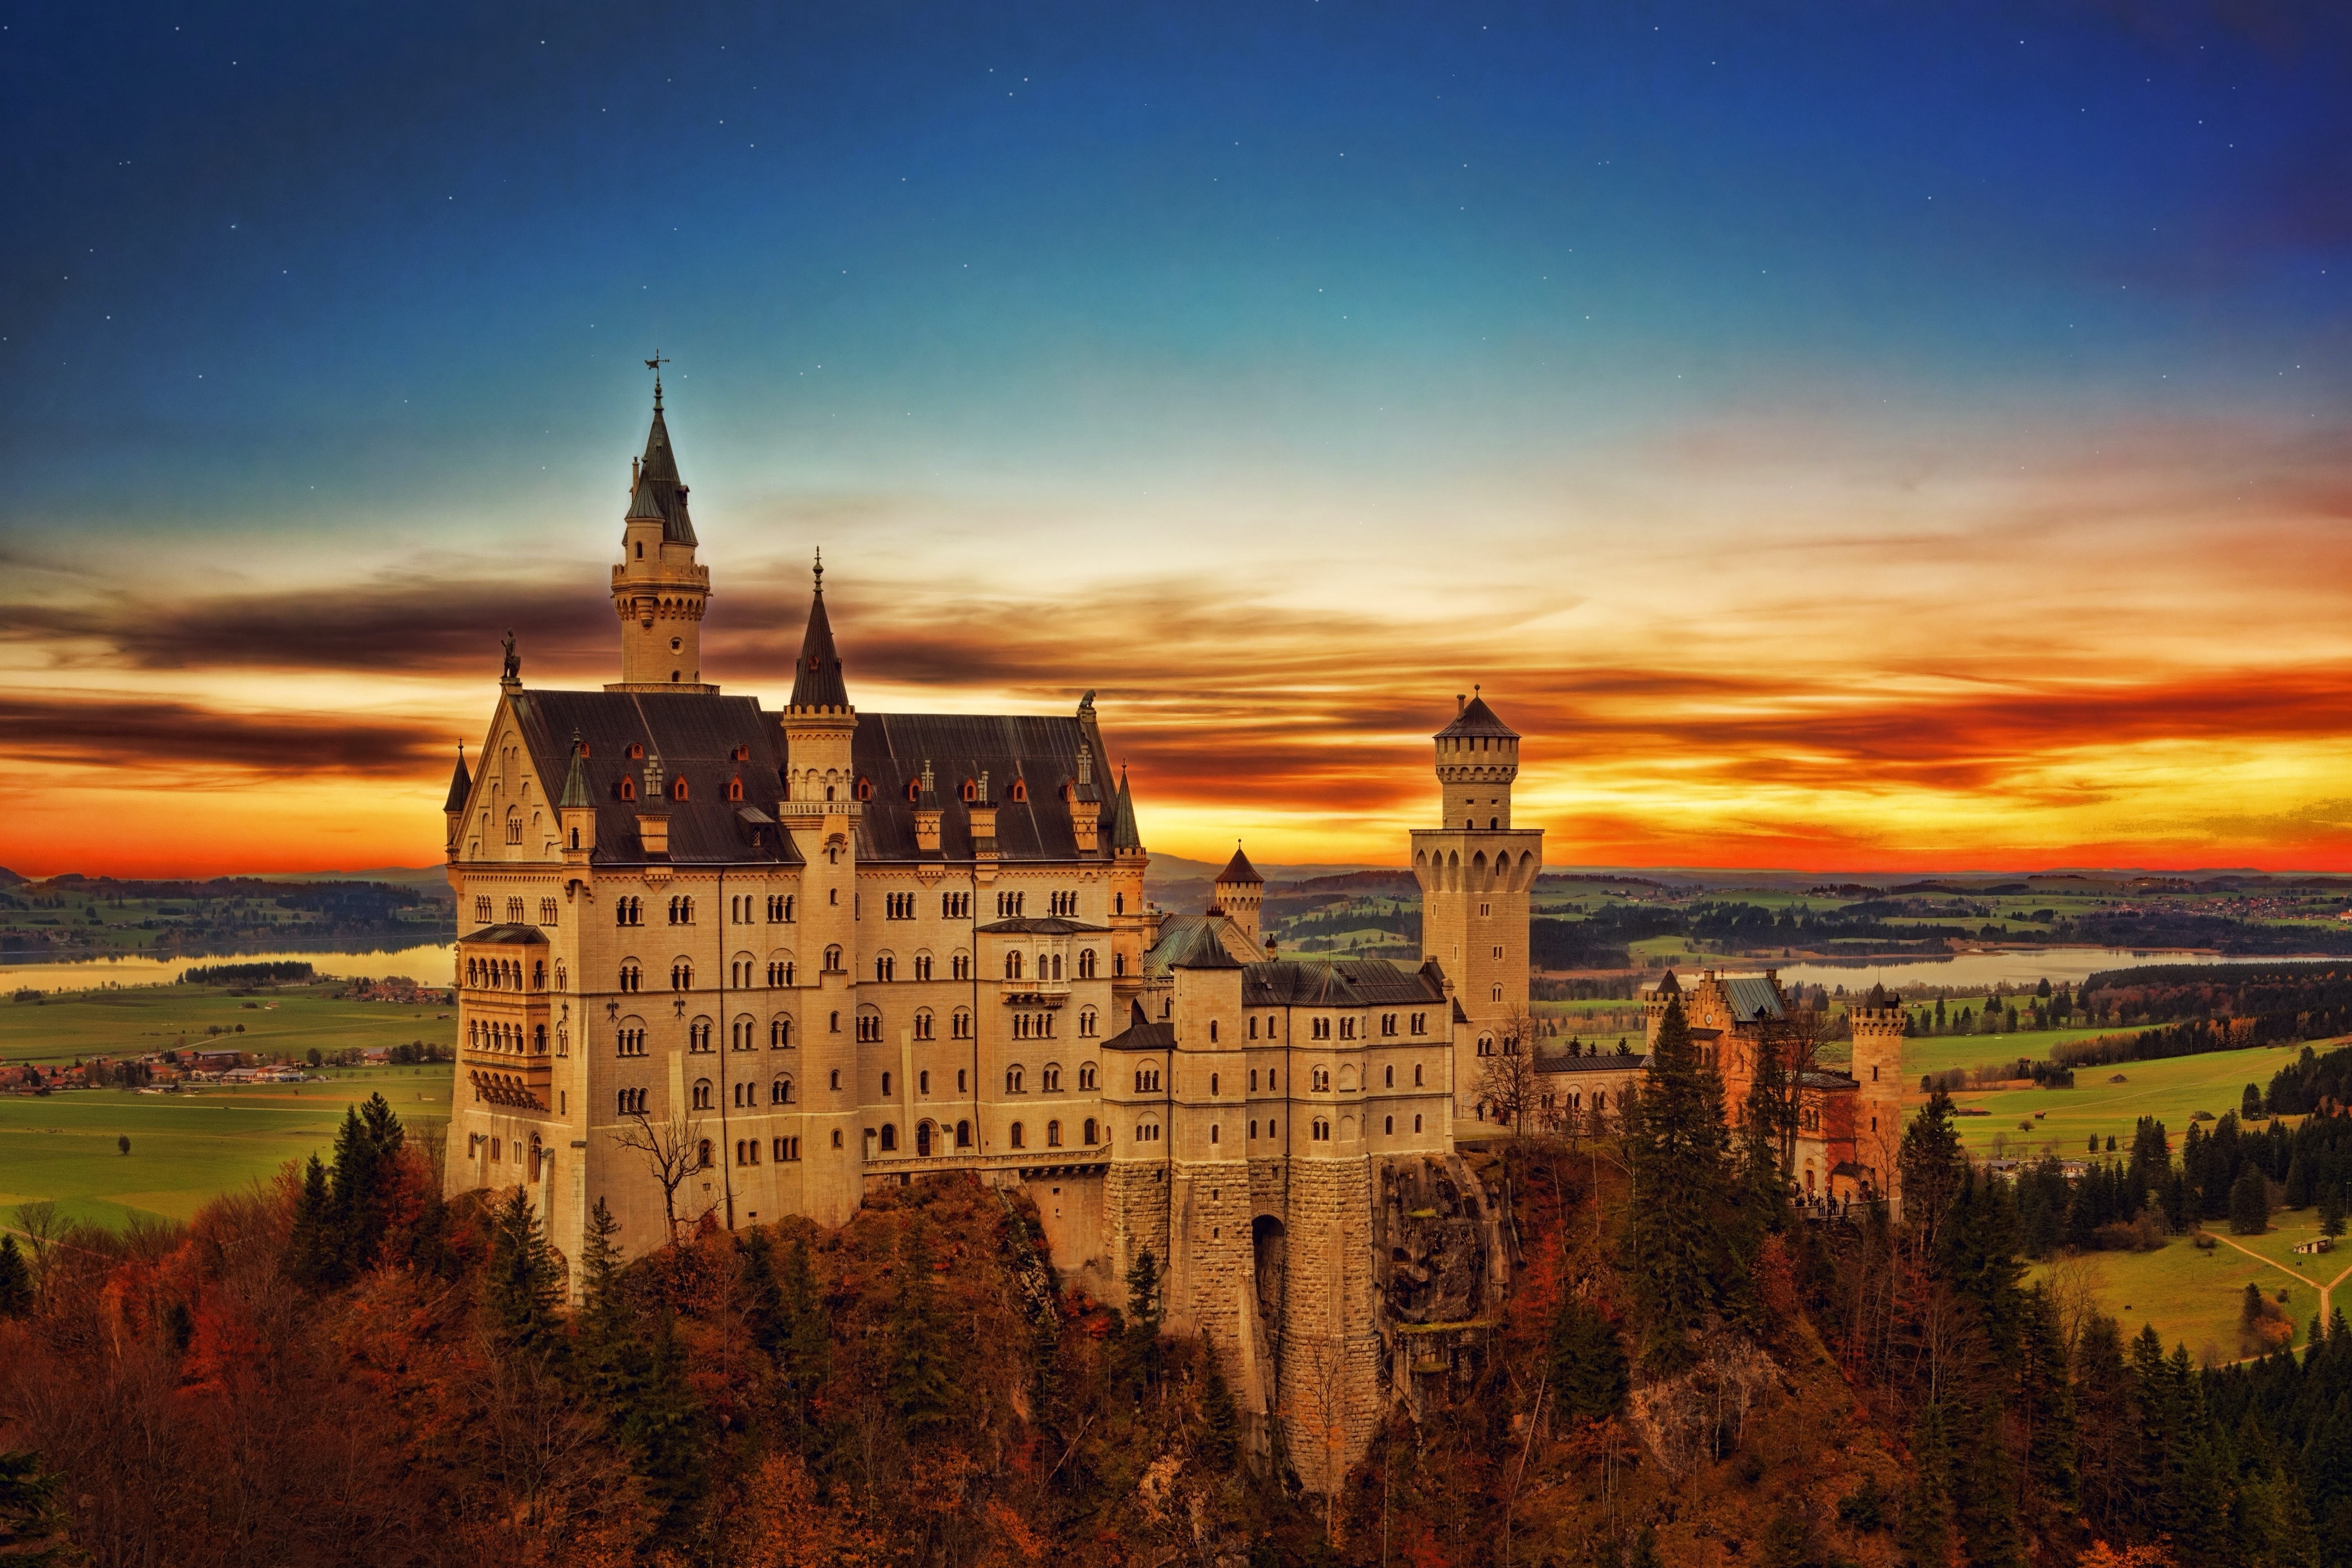 Drone view of Neuschwanstein Castle and country landscape with orange and blue sunrise-or-sunset horizon